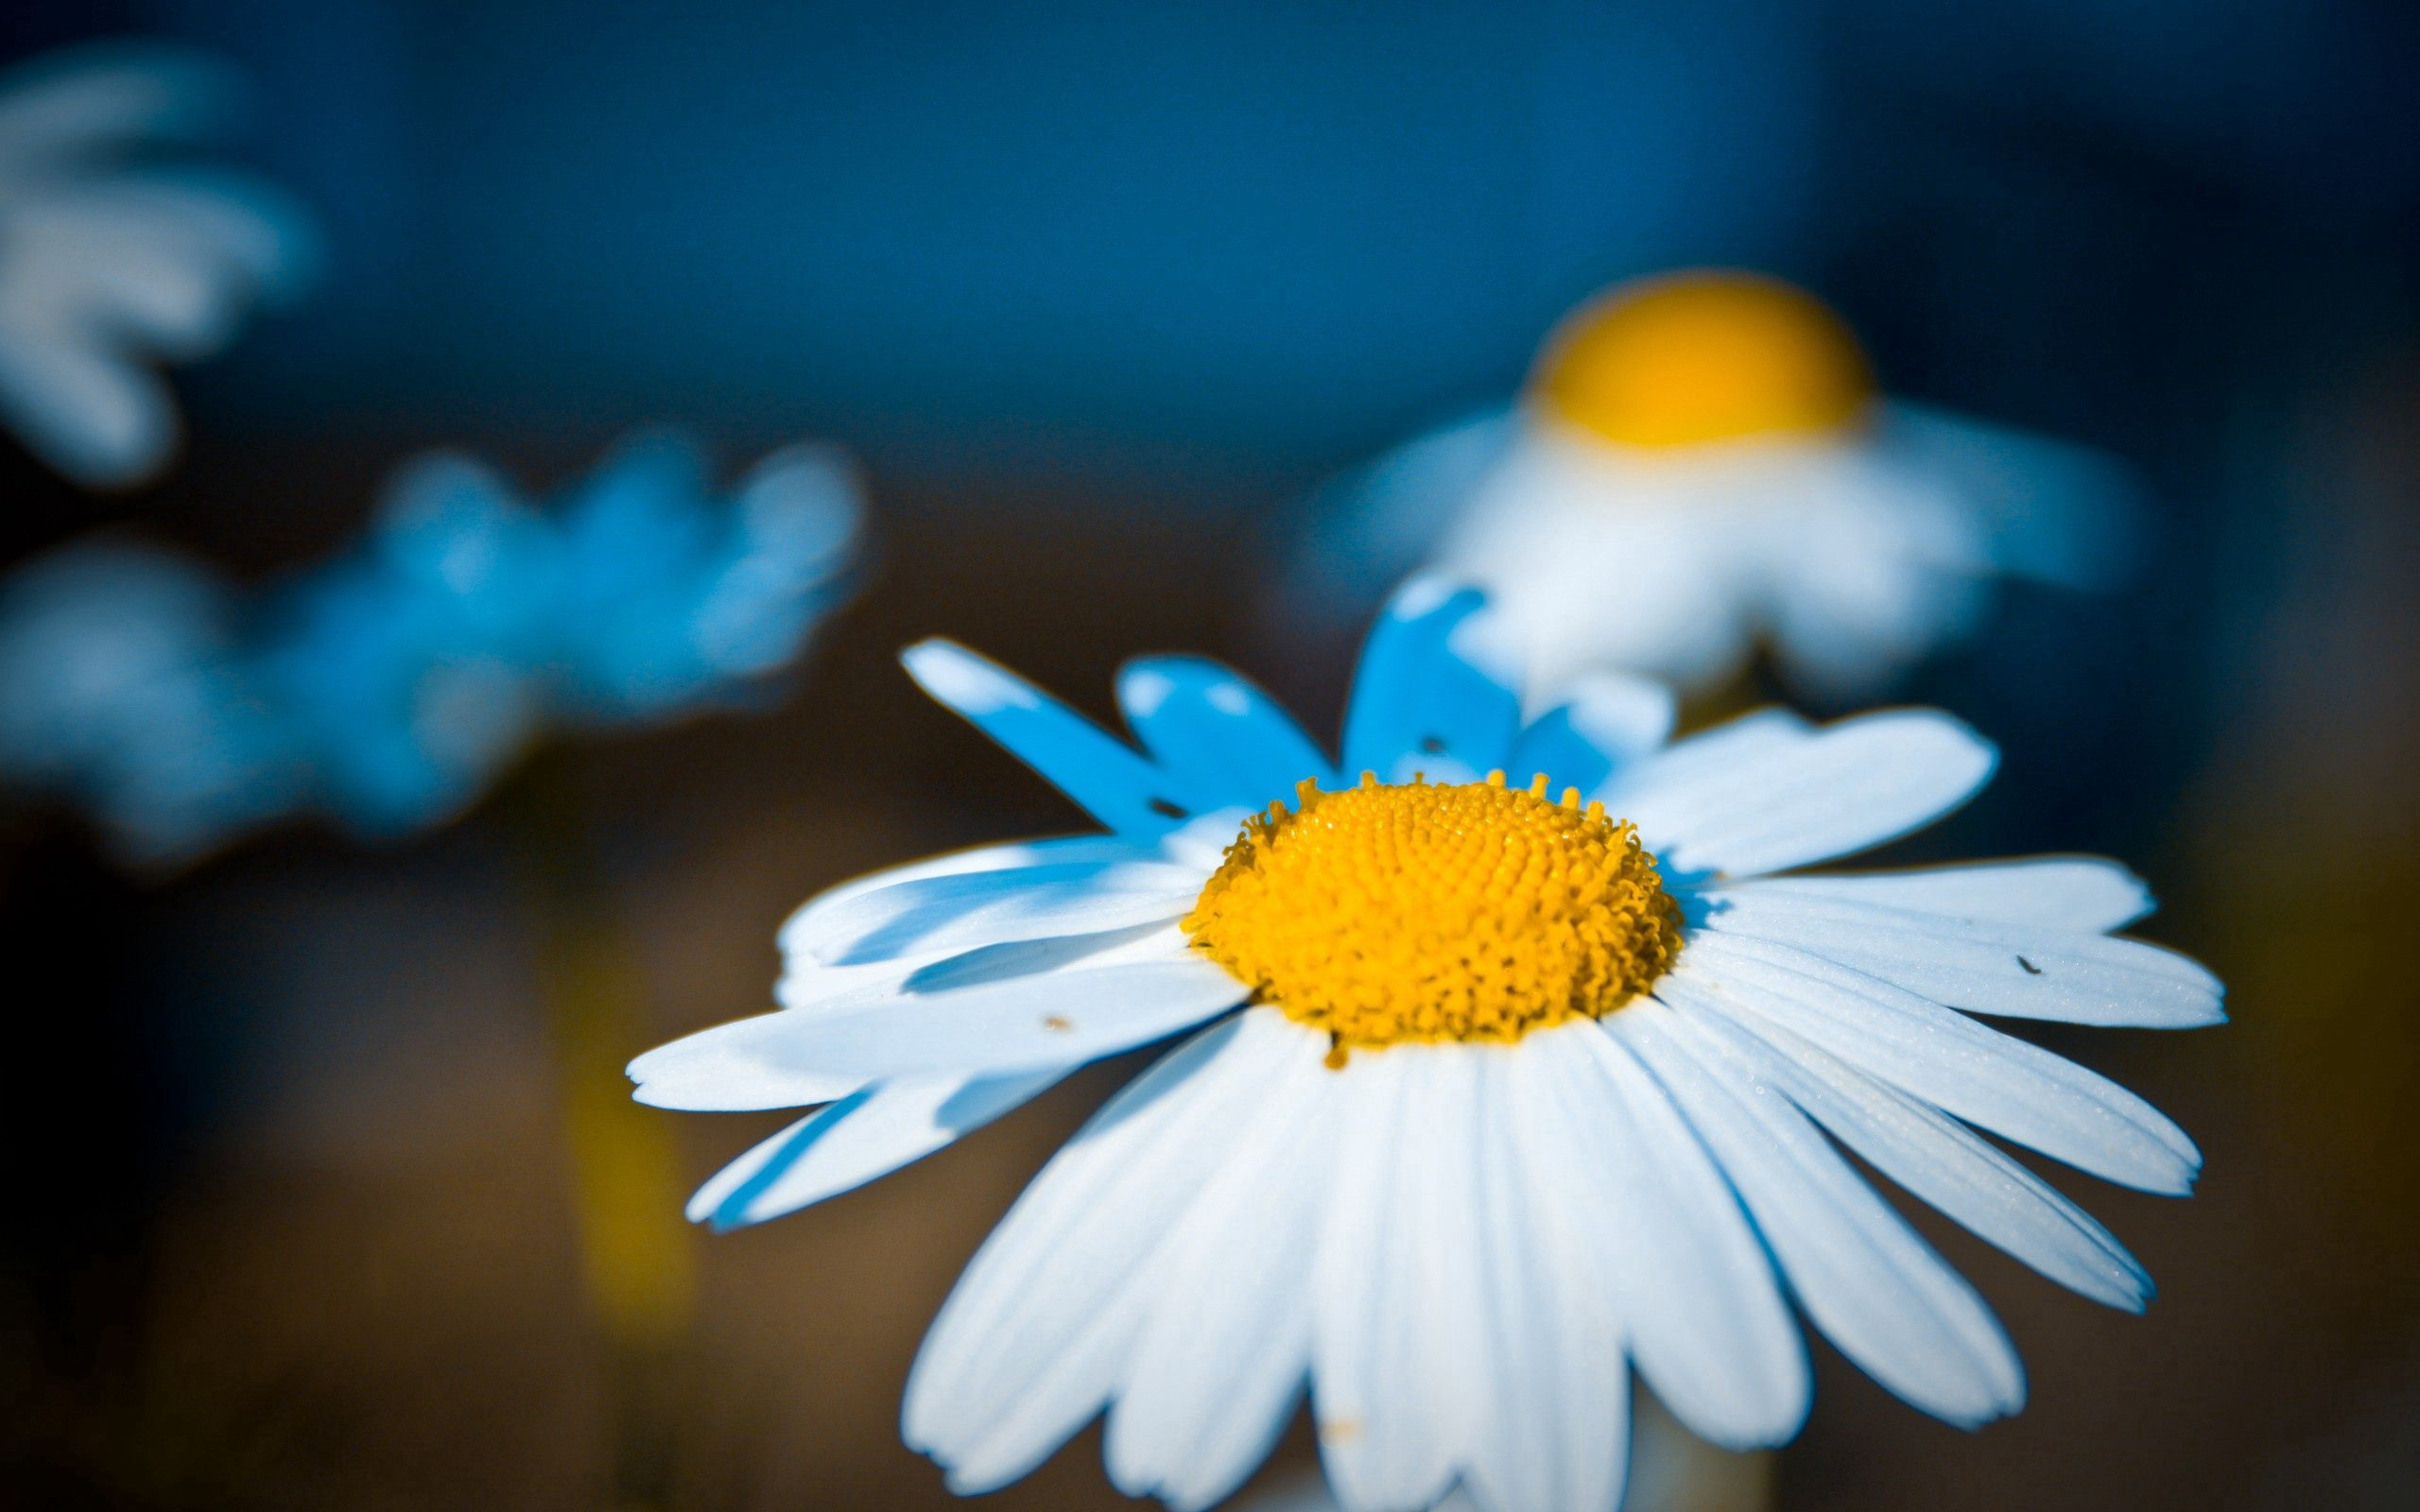 116660 download wallpaper Macro, Chamomile, Camomile, Flower, Shine, Light, Petals screensavers and pictures for free